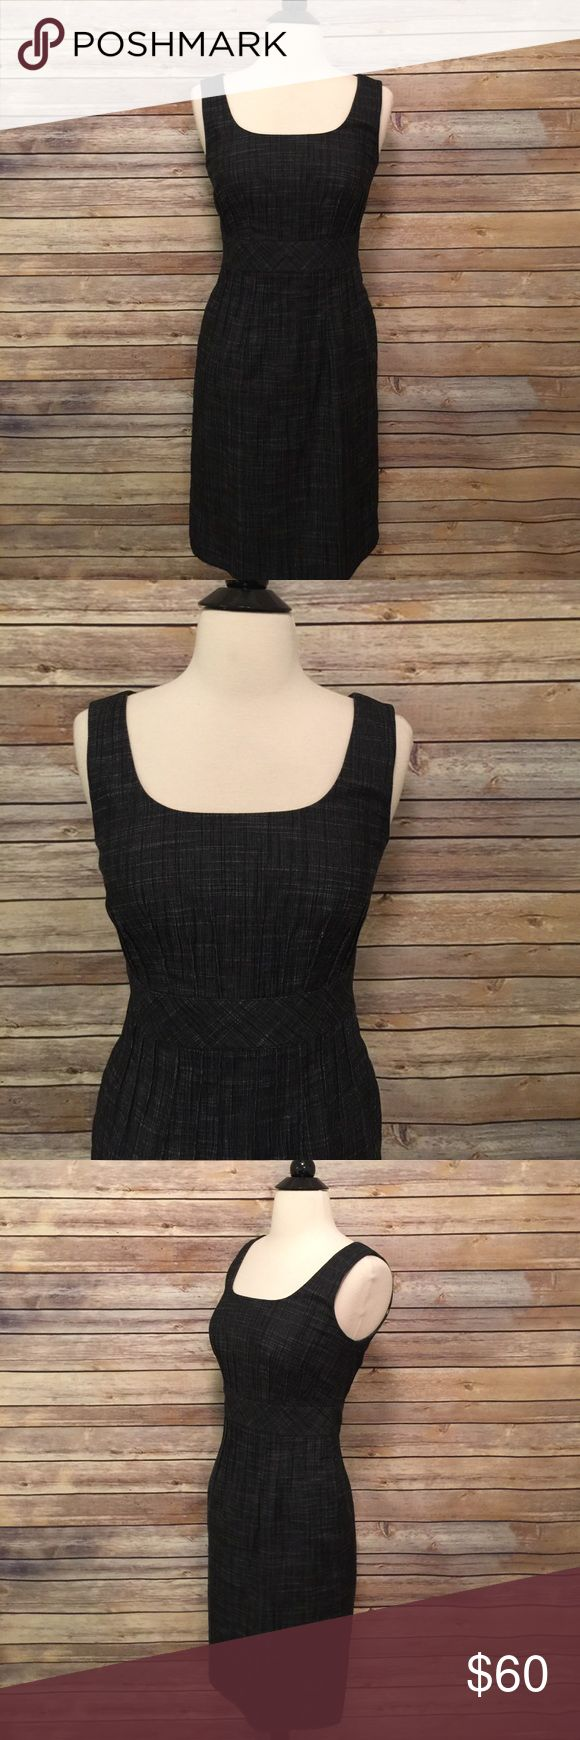 "Kay Unger New York 100% Cotton dress Beautiful and classy Kay Unger dress.  In excellent condition!  Bust 32"" Length 35"" Waist 28"" Dark gray in color. Kay Unger Dresses"